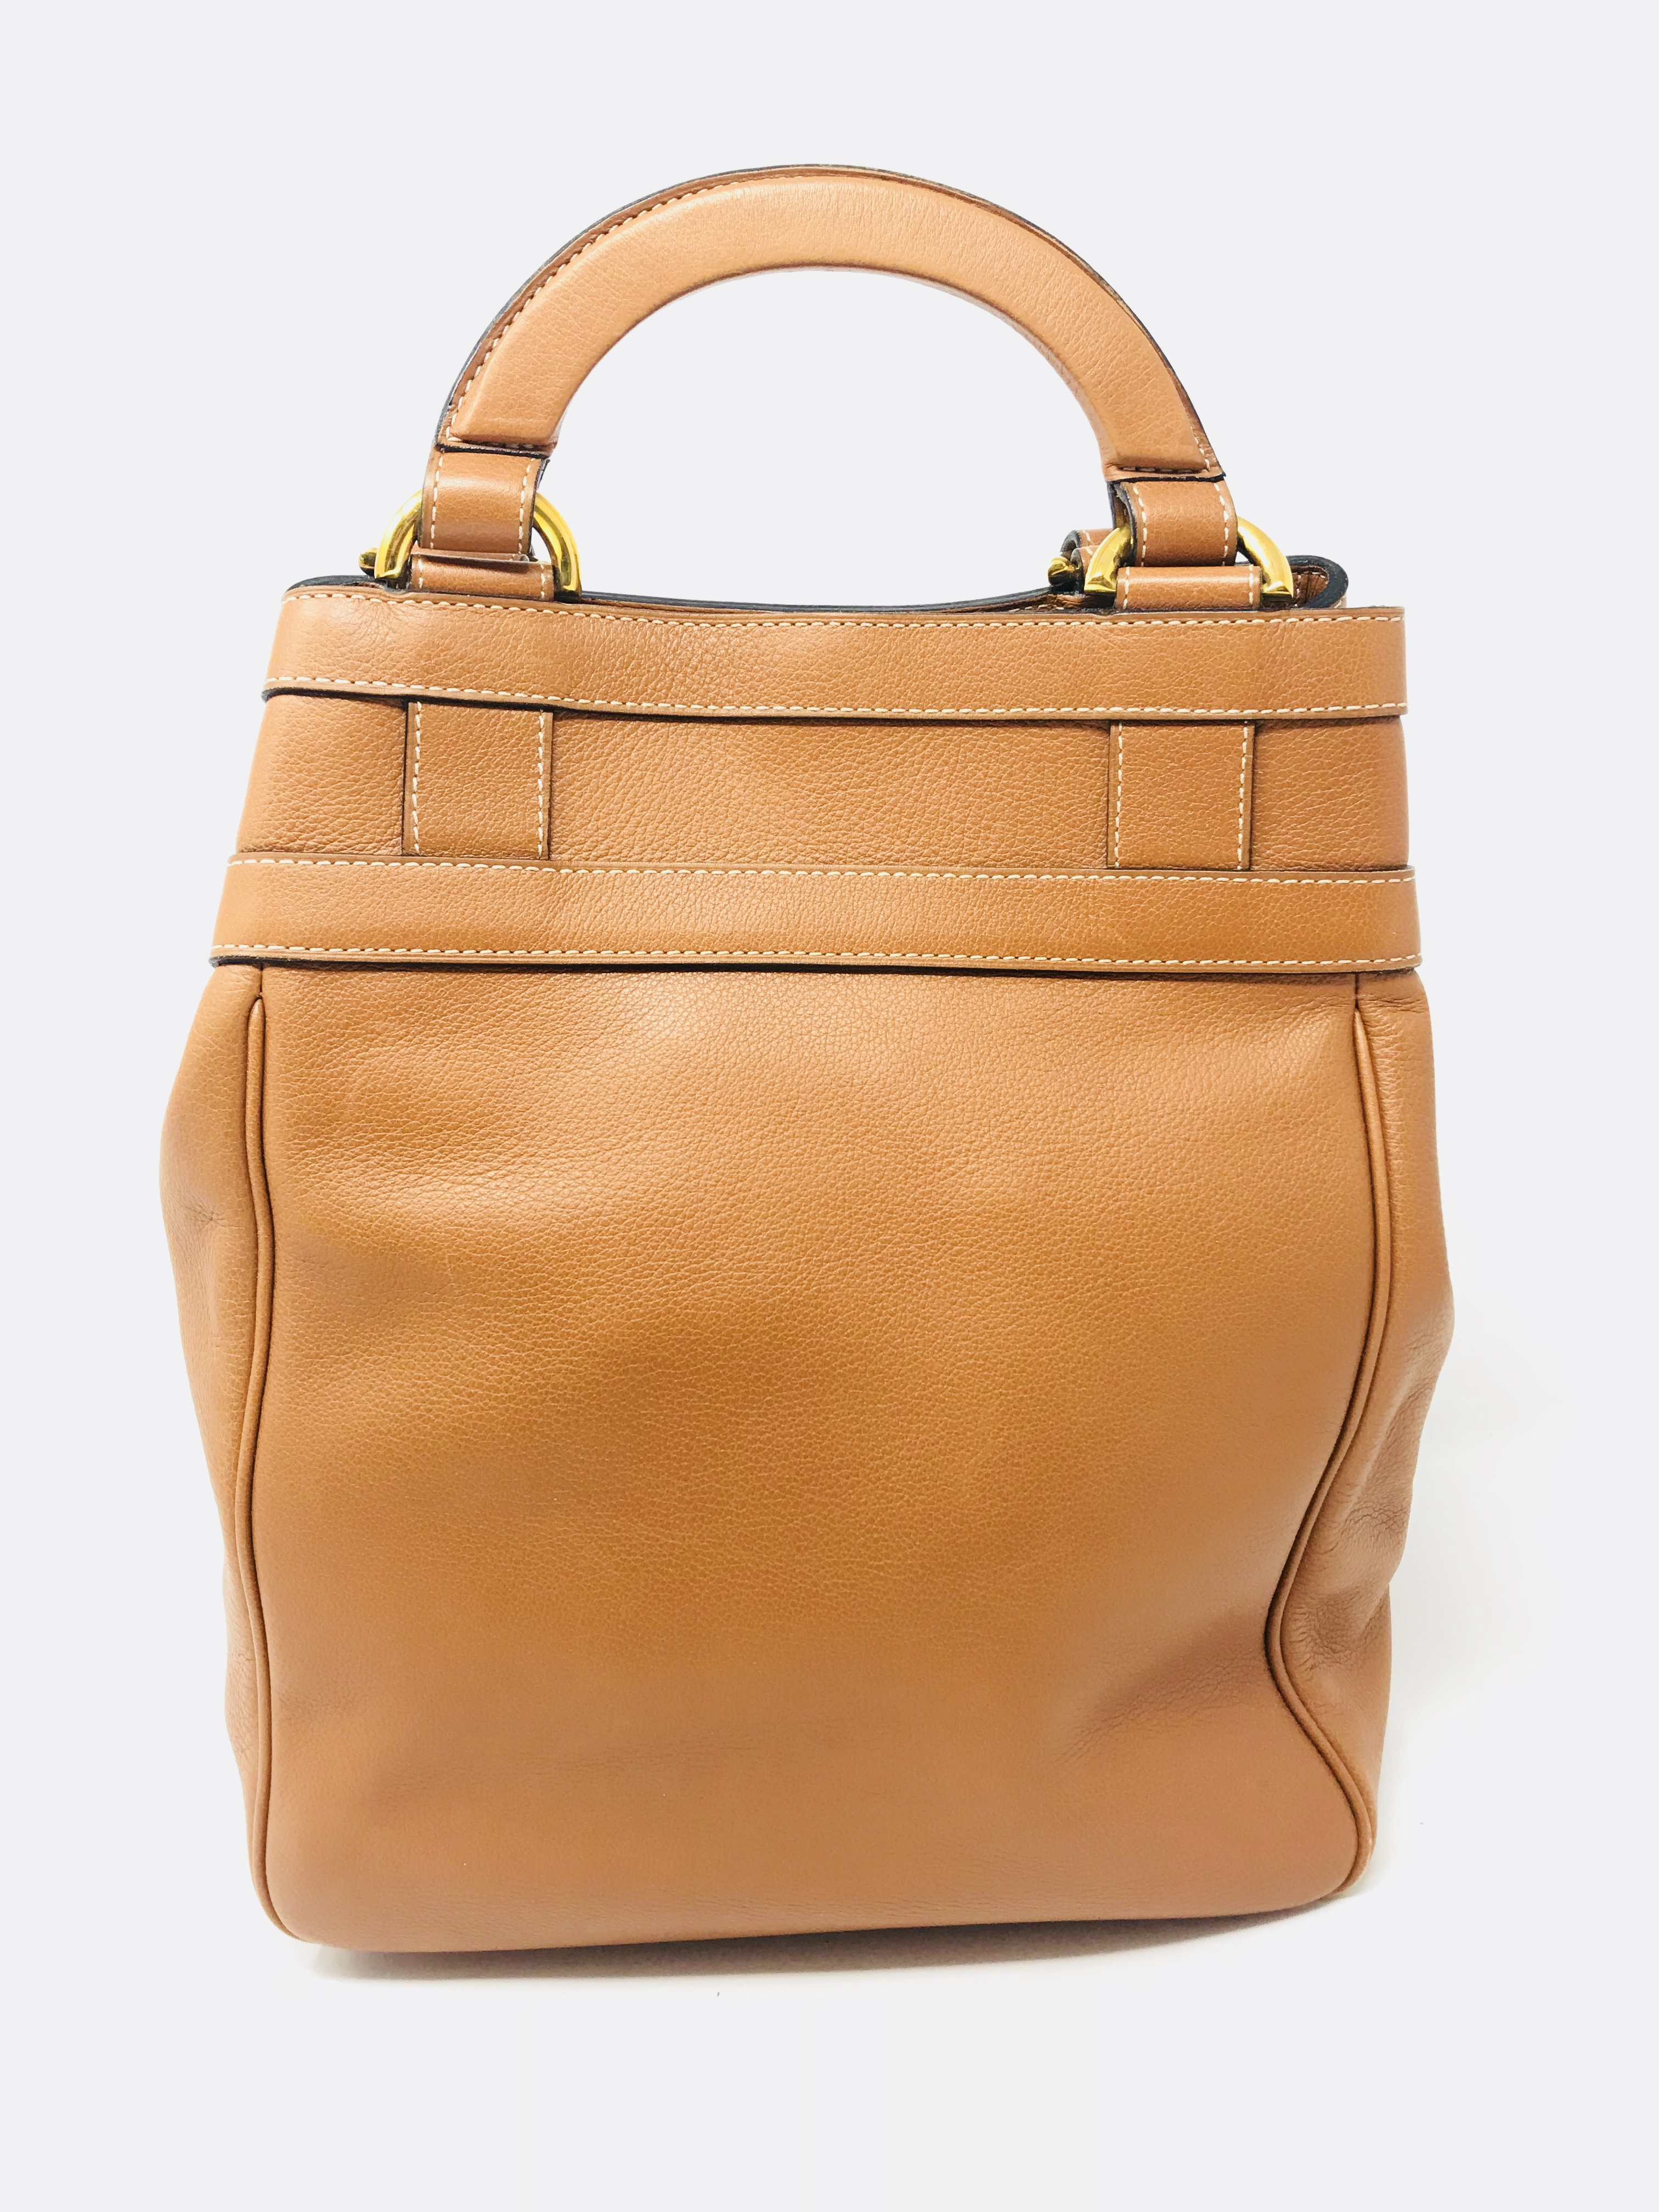 Delvaux leather Purses, Handbags Price: $256.99